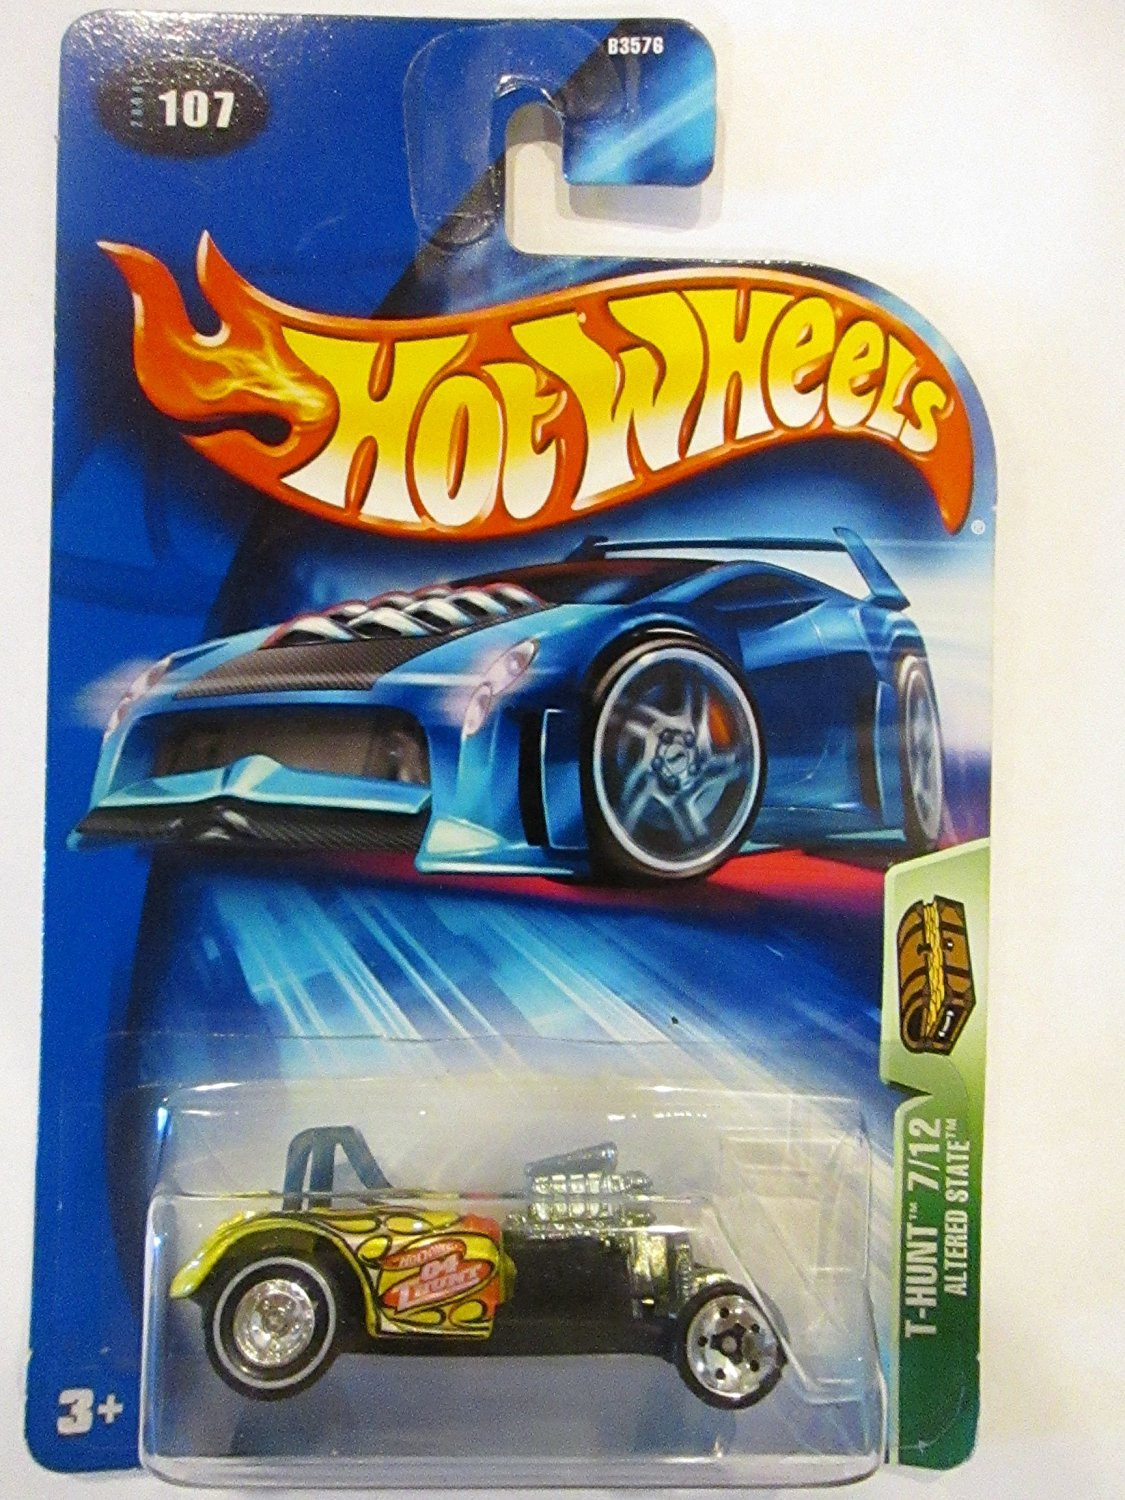 Hot Wheels 2004 Treasure Hunt 1:64 Scale Yellow Altered State 7 12 Die Cast Car #107 By... by